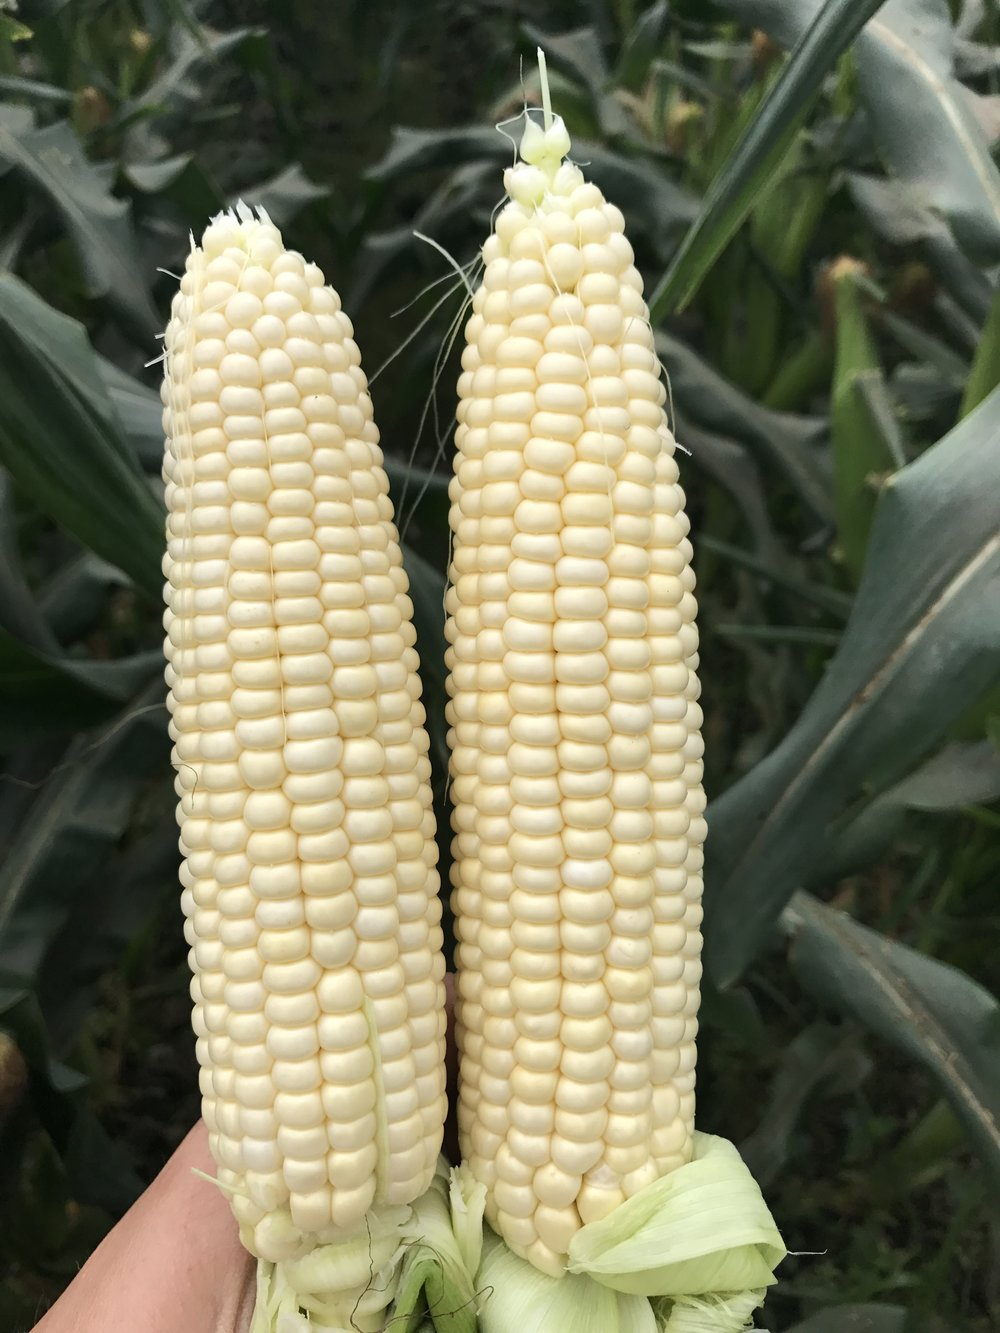 Two Florida Fresh Winter White Sweet Corn